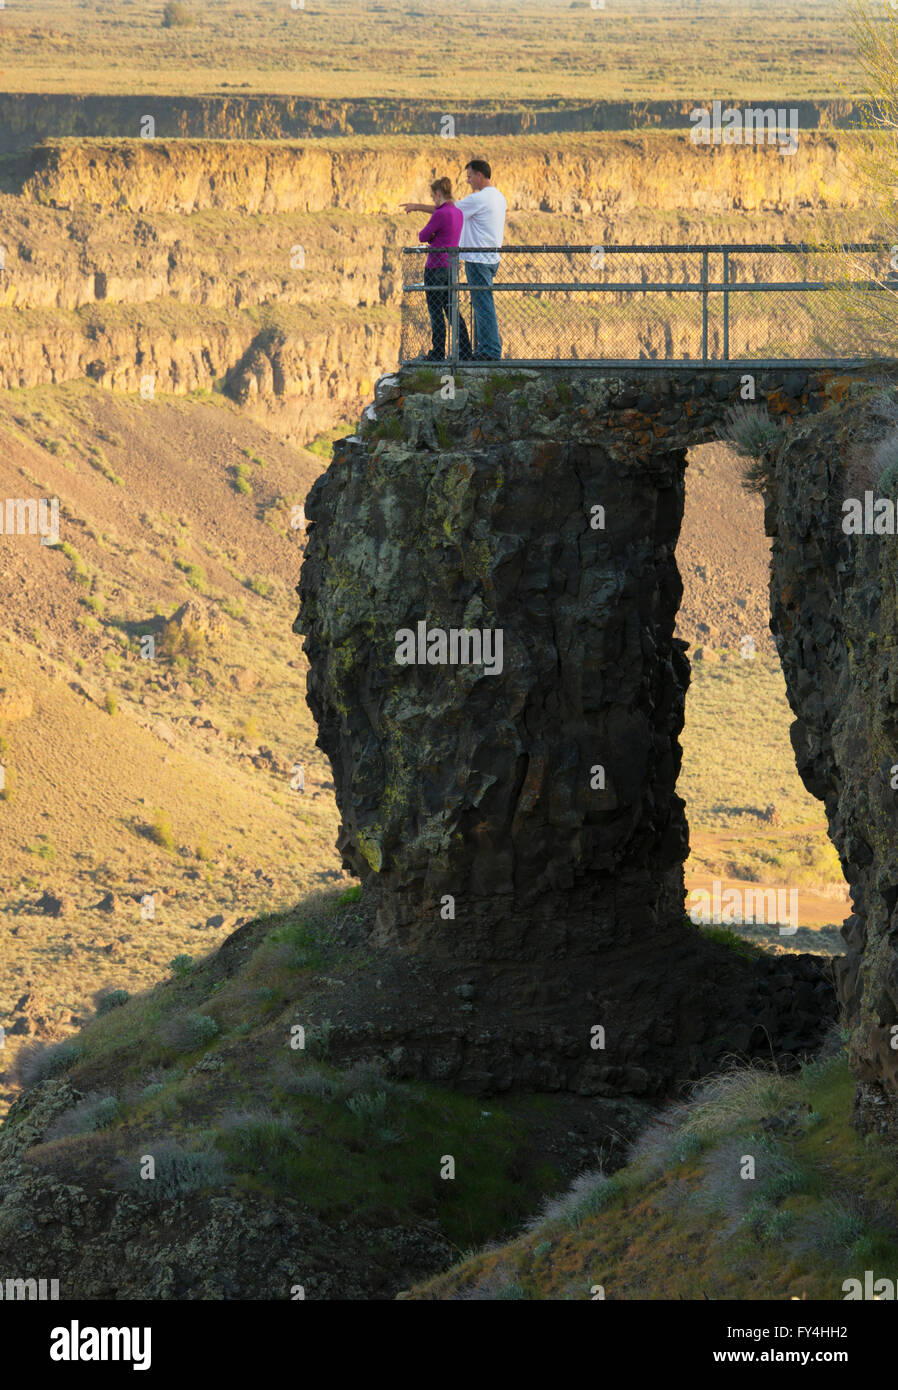 Couple at viewpoint, Dry Falls State Park, Site of massive Ice Age floods, Eastern Washington State. - Stock Image